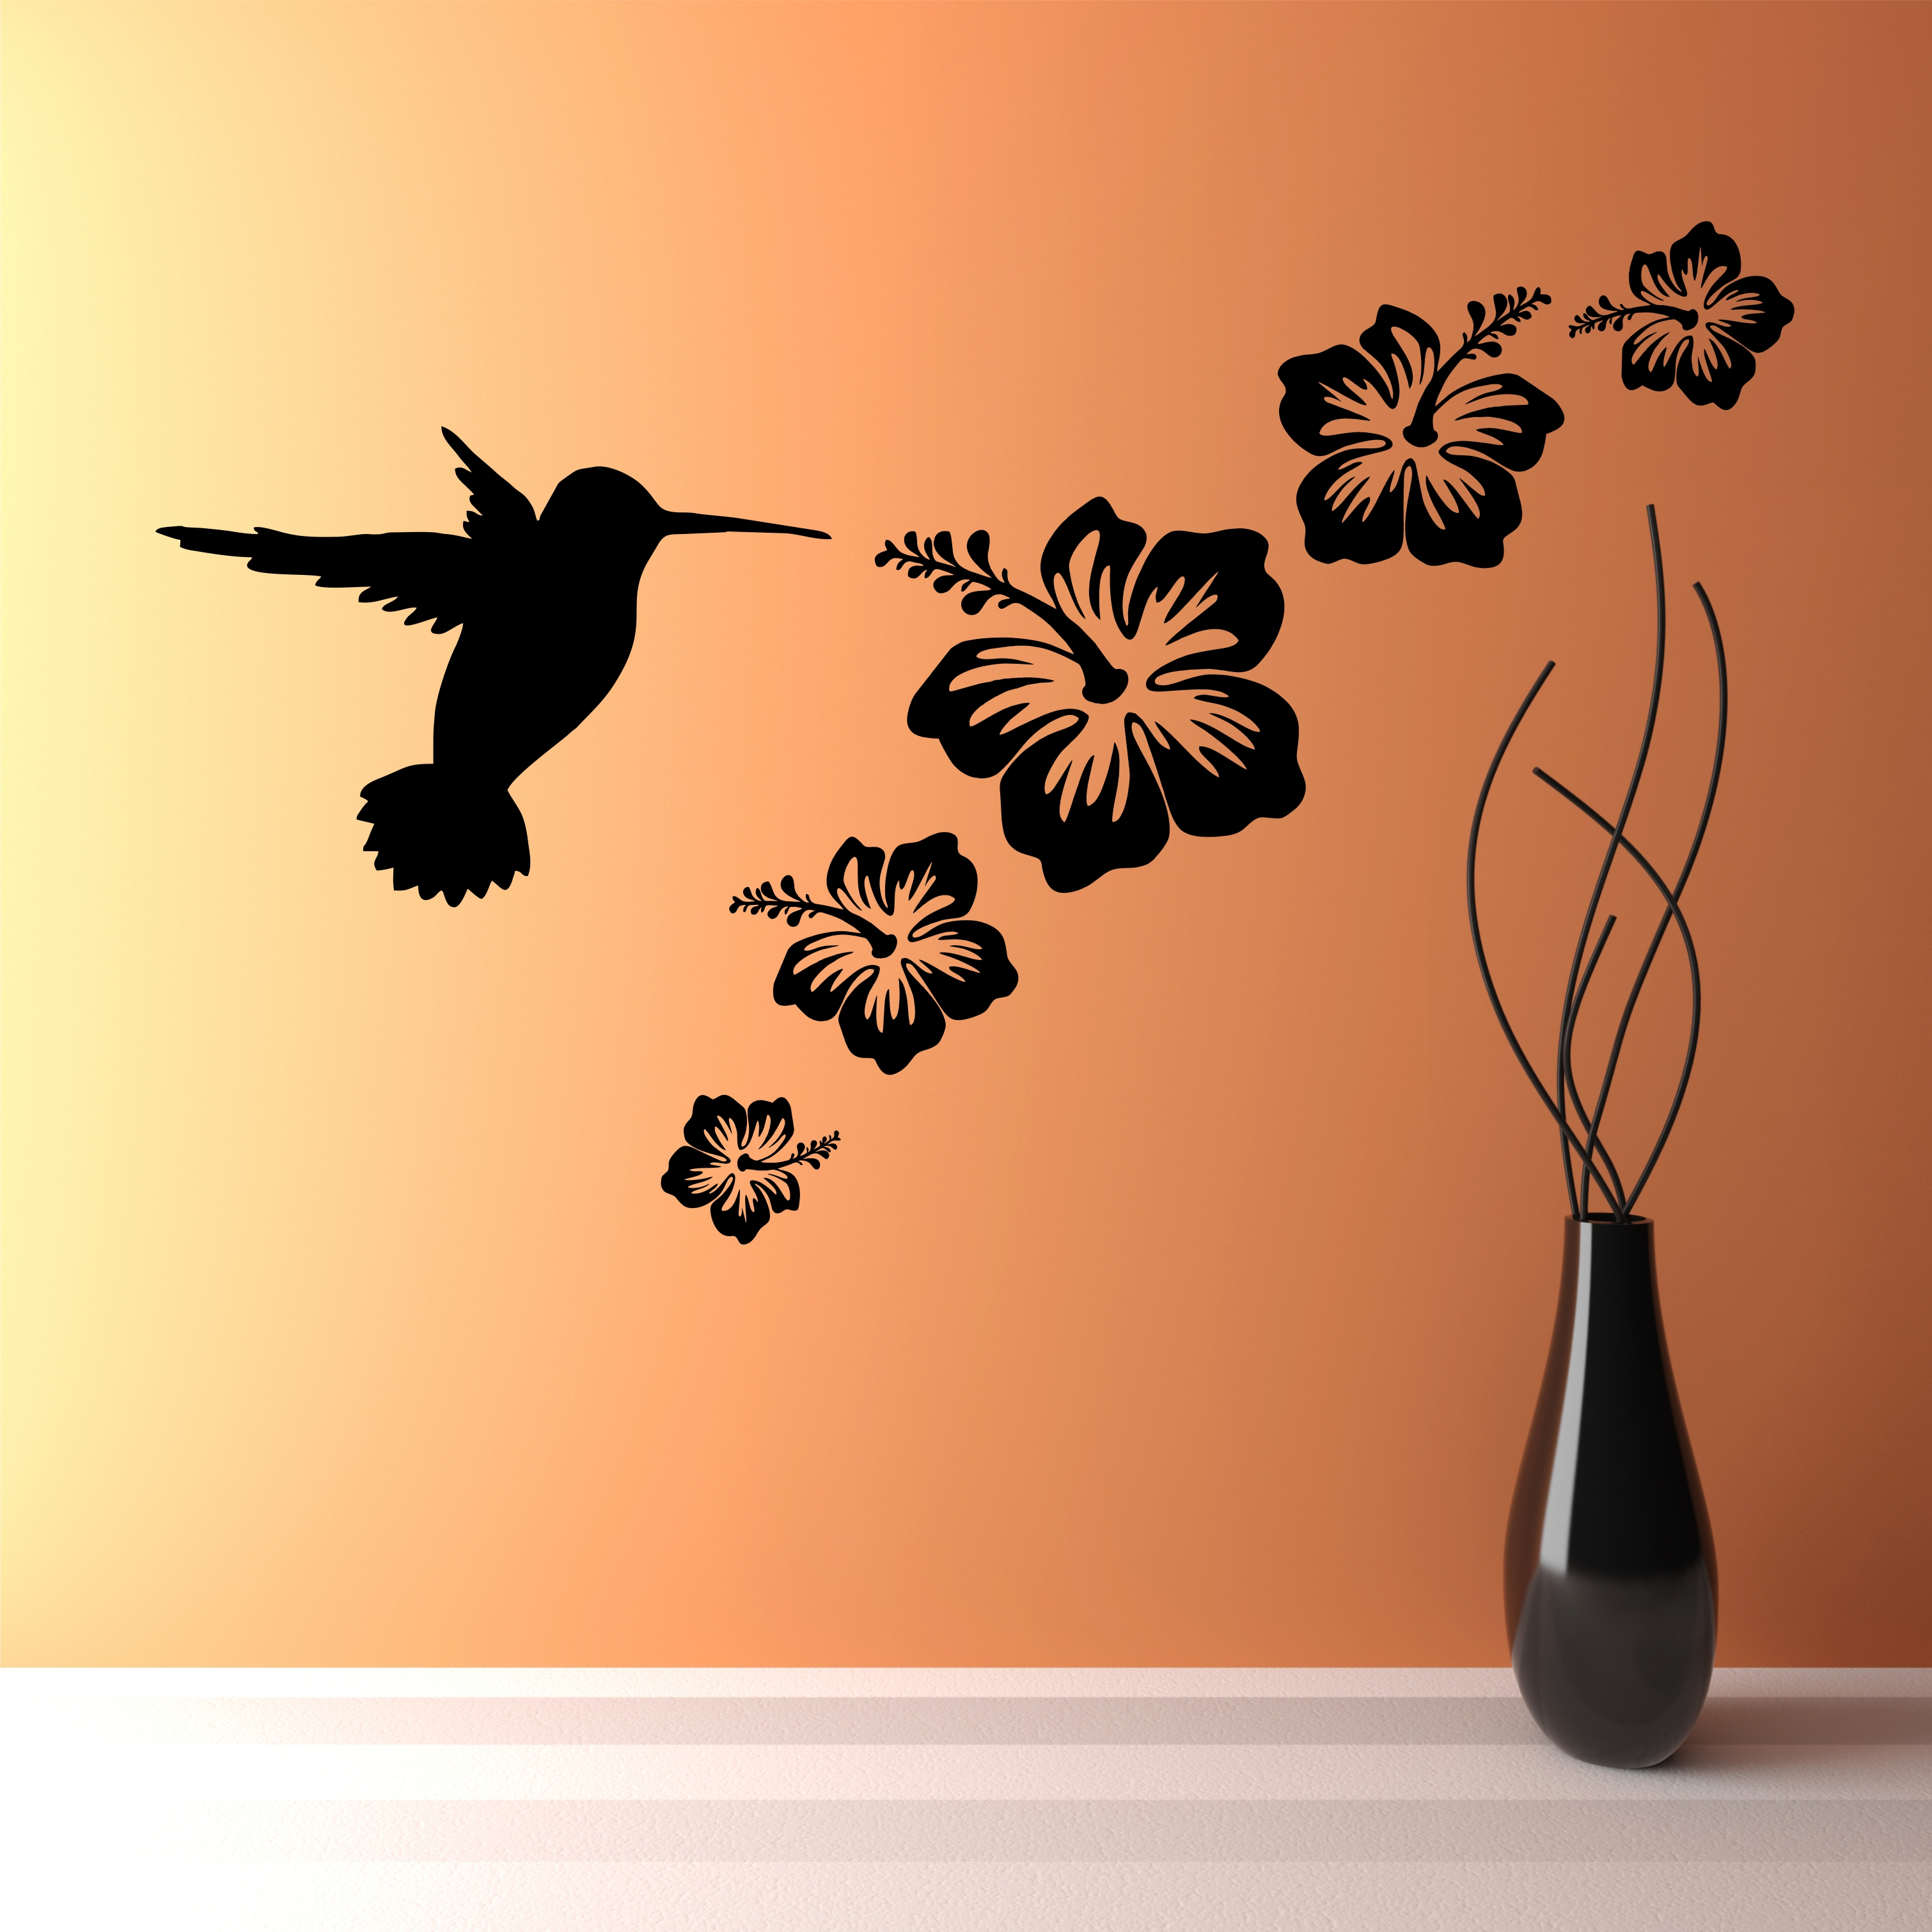 wall art stickers flowers photo - 5